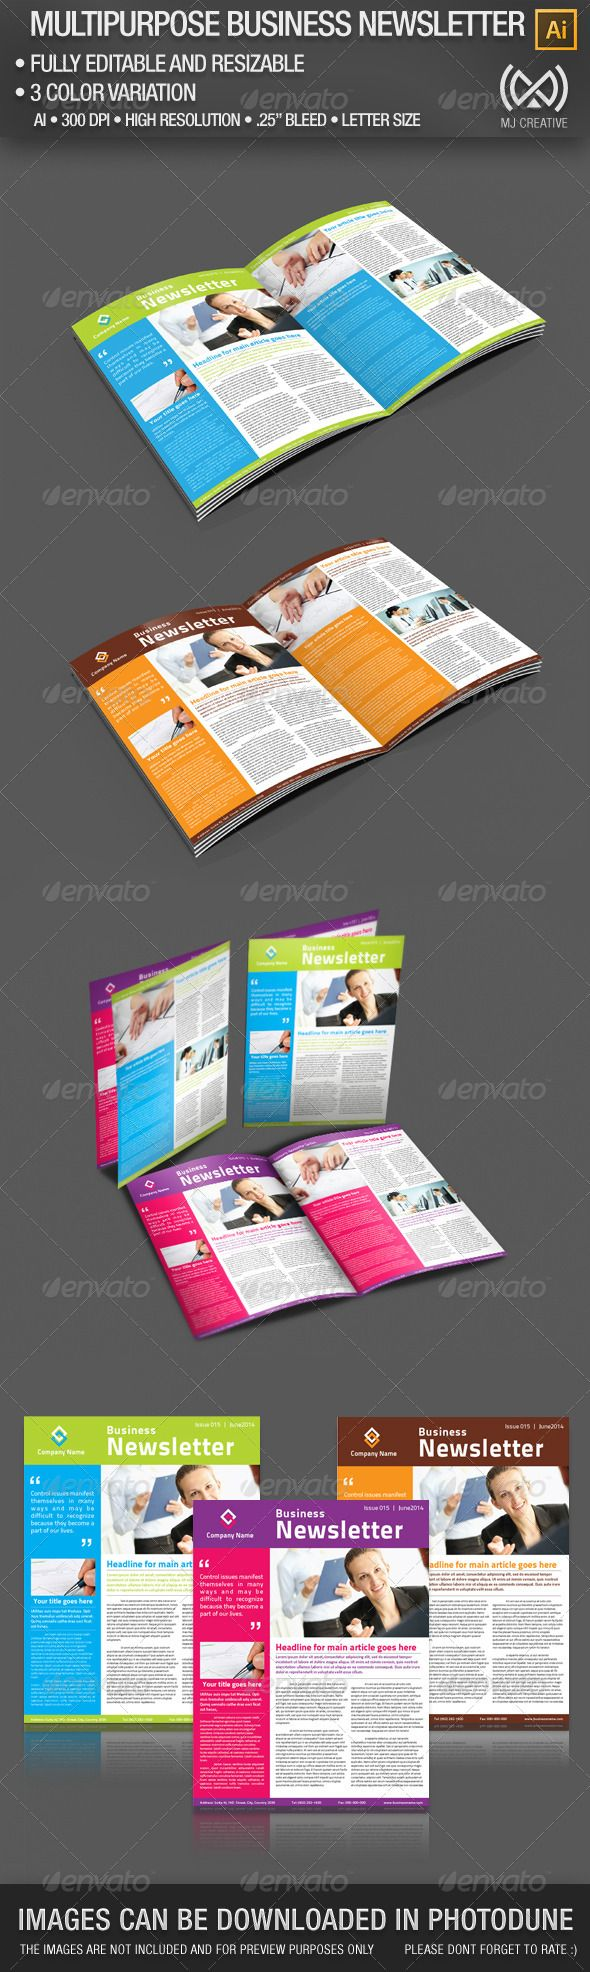 Pages Multipurpose Business Newsletter Print Templates - Multi page newsletter templates